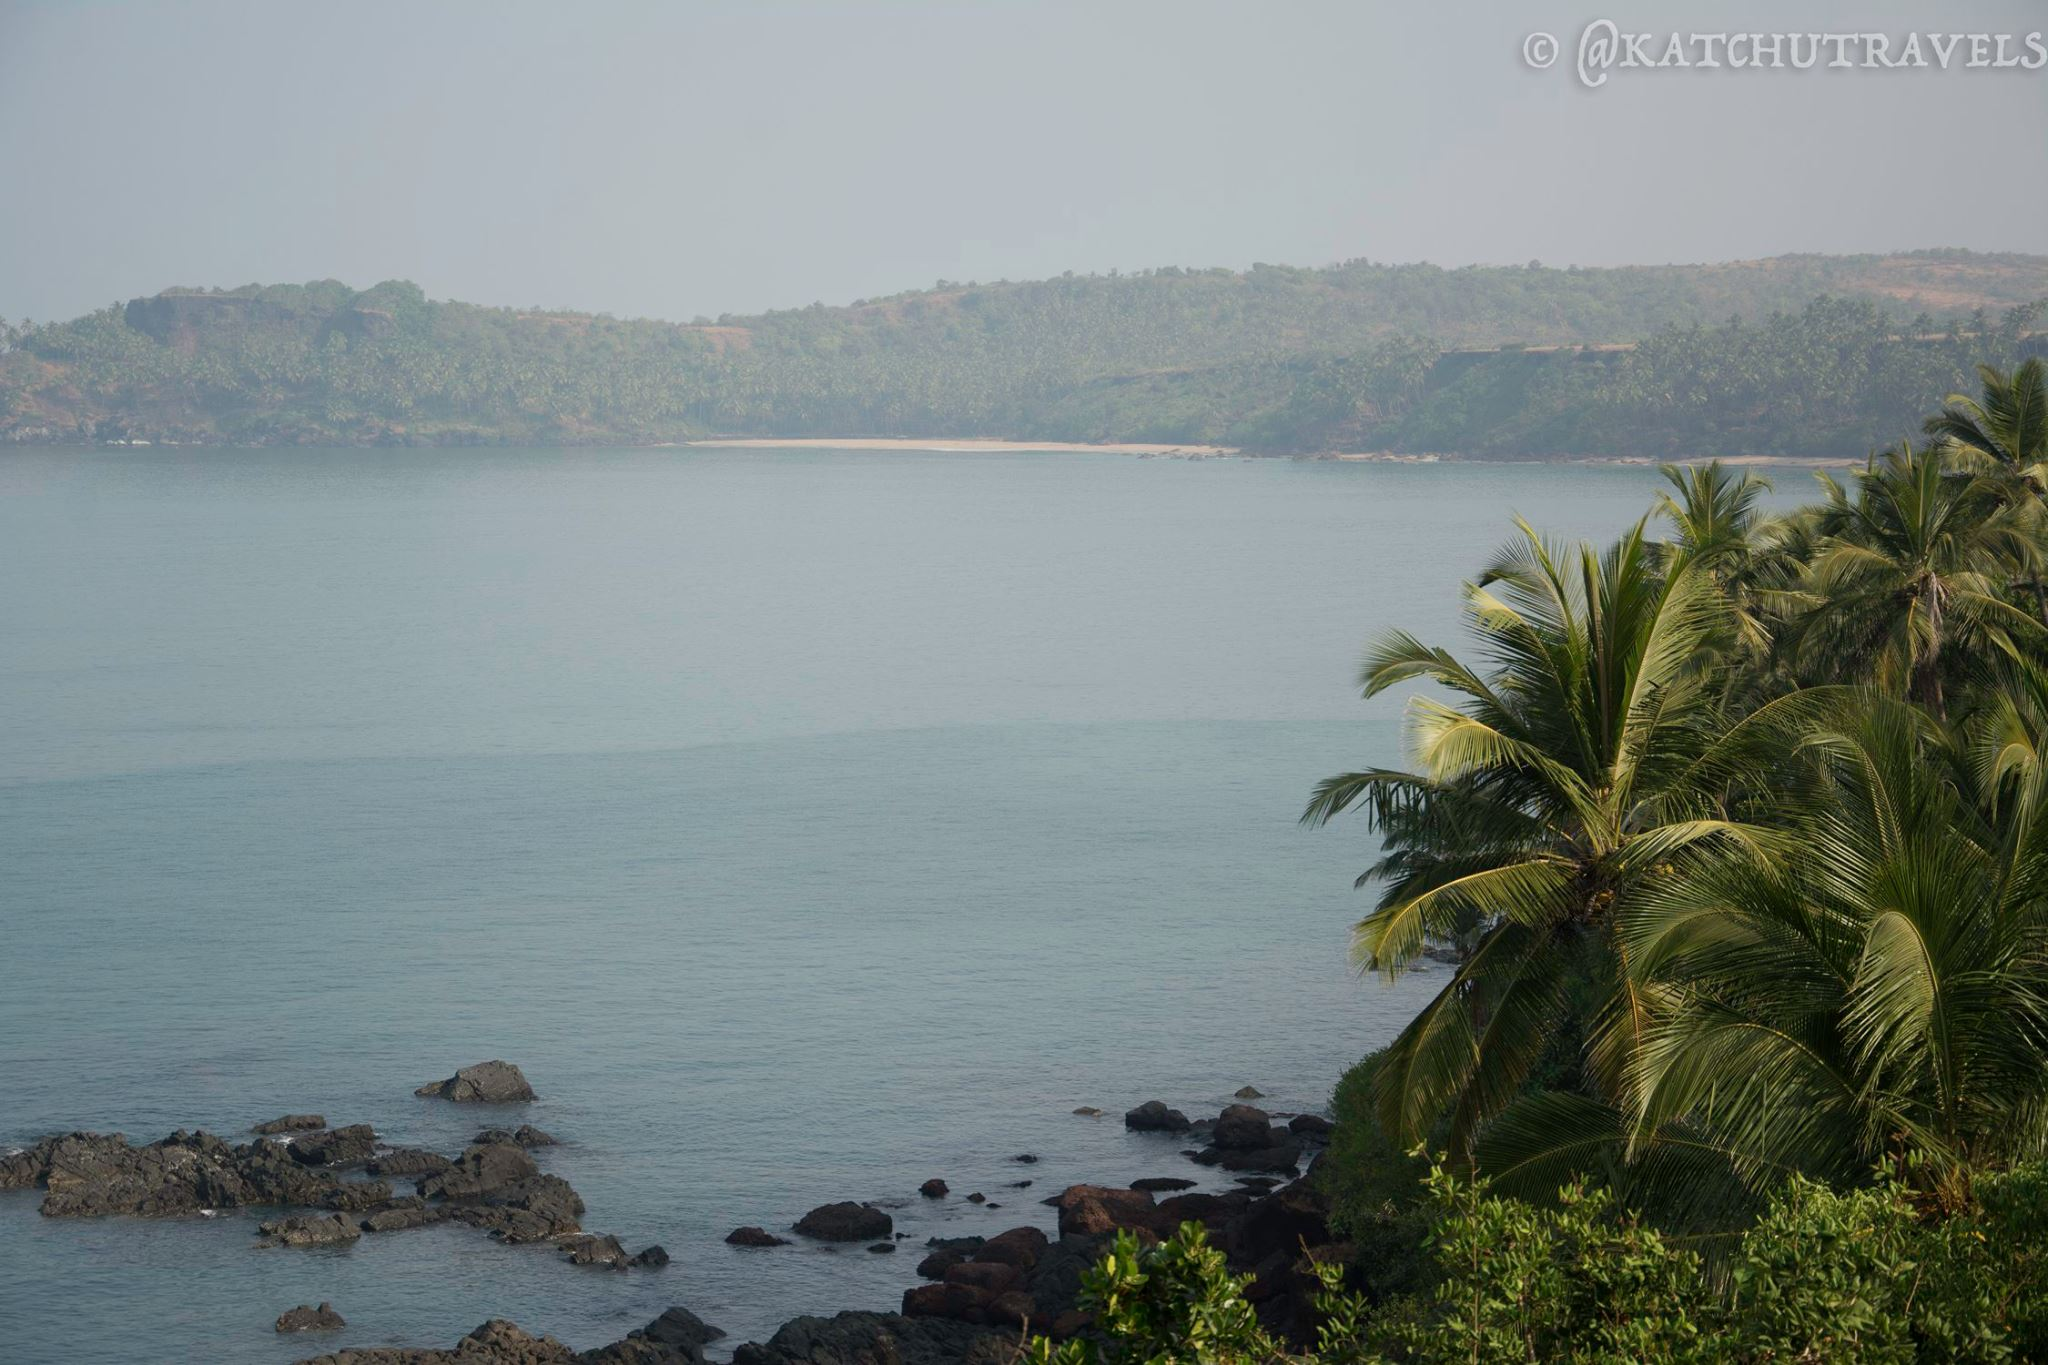 Cabo De Rama Beach is in South Goa, 45 minutes away from Palolem and 30 minutes away from Agonda